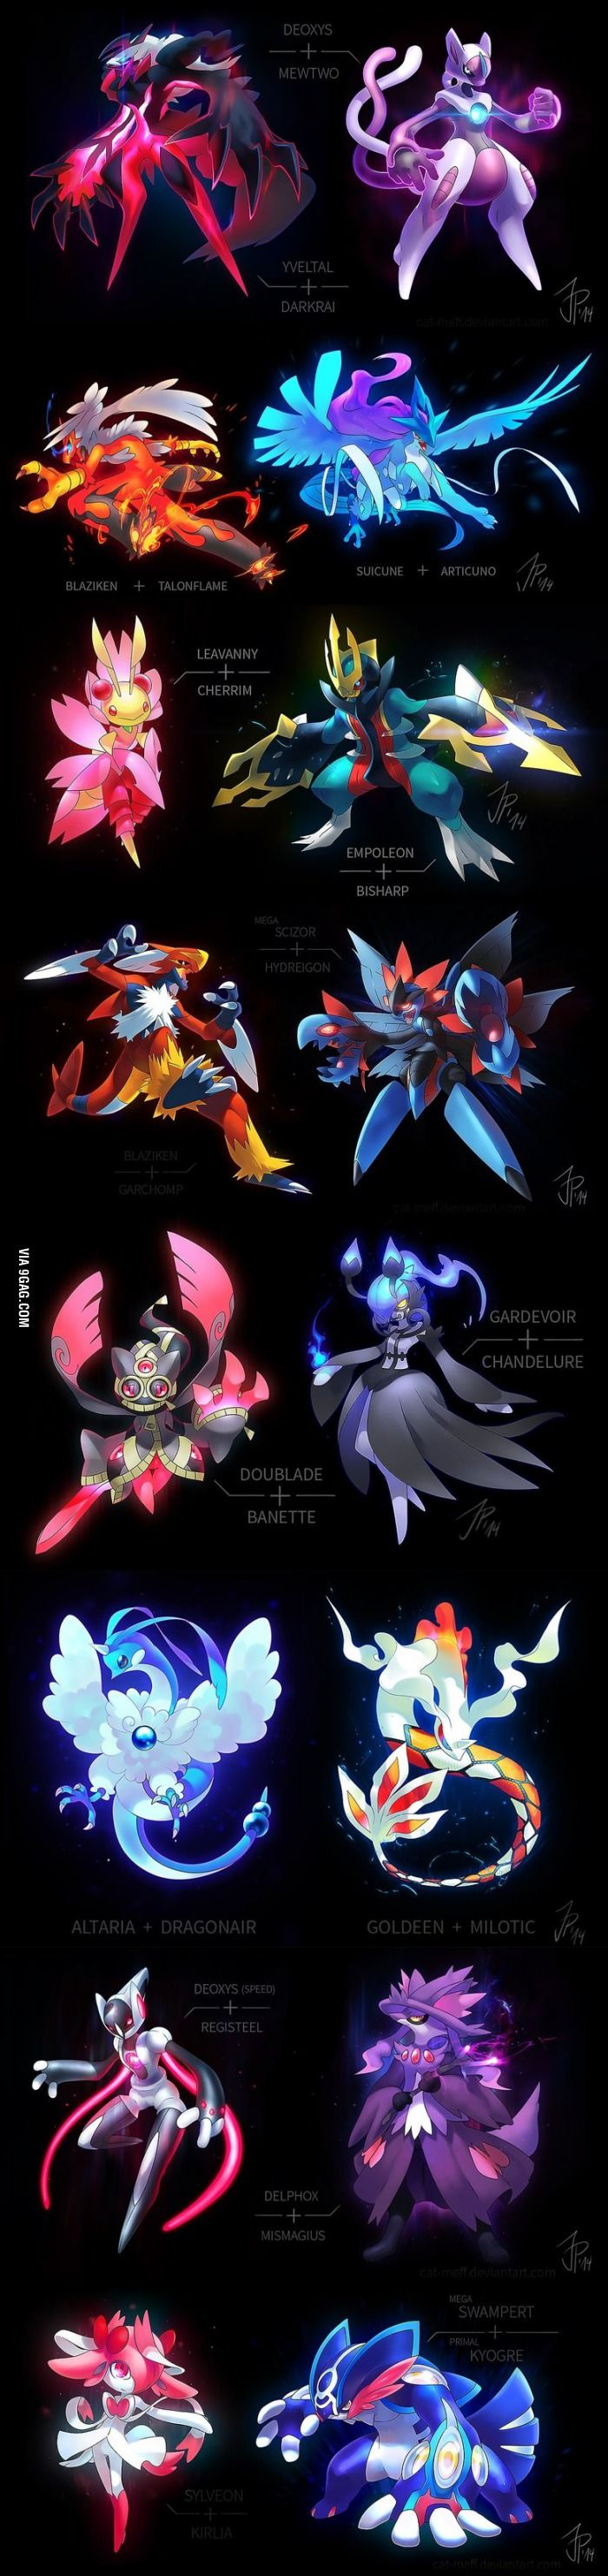 "Pokemon Fusions. This should be the next ""mega evolution"" mechanic, NINTENDO MAKE THIS A THING! pass it on guys!"